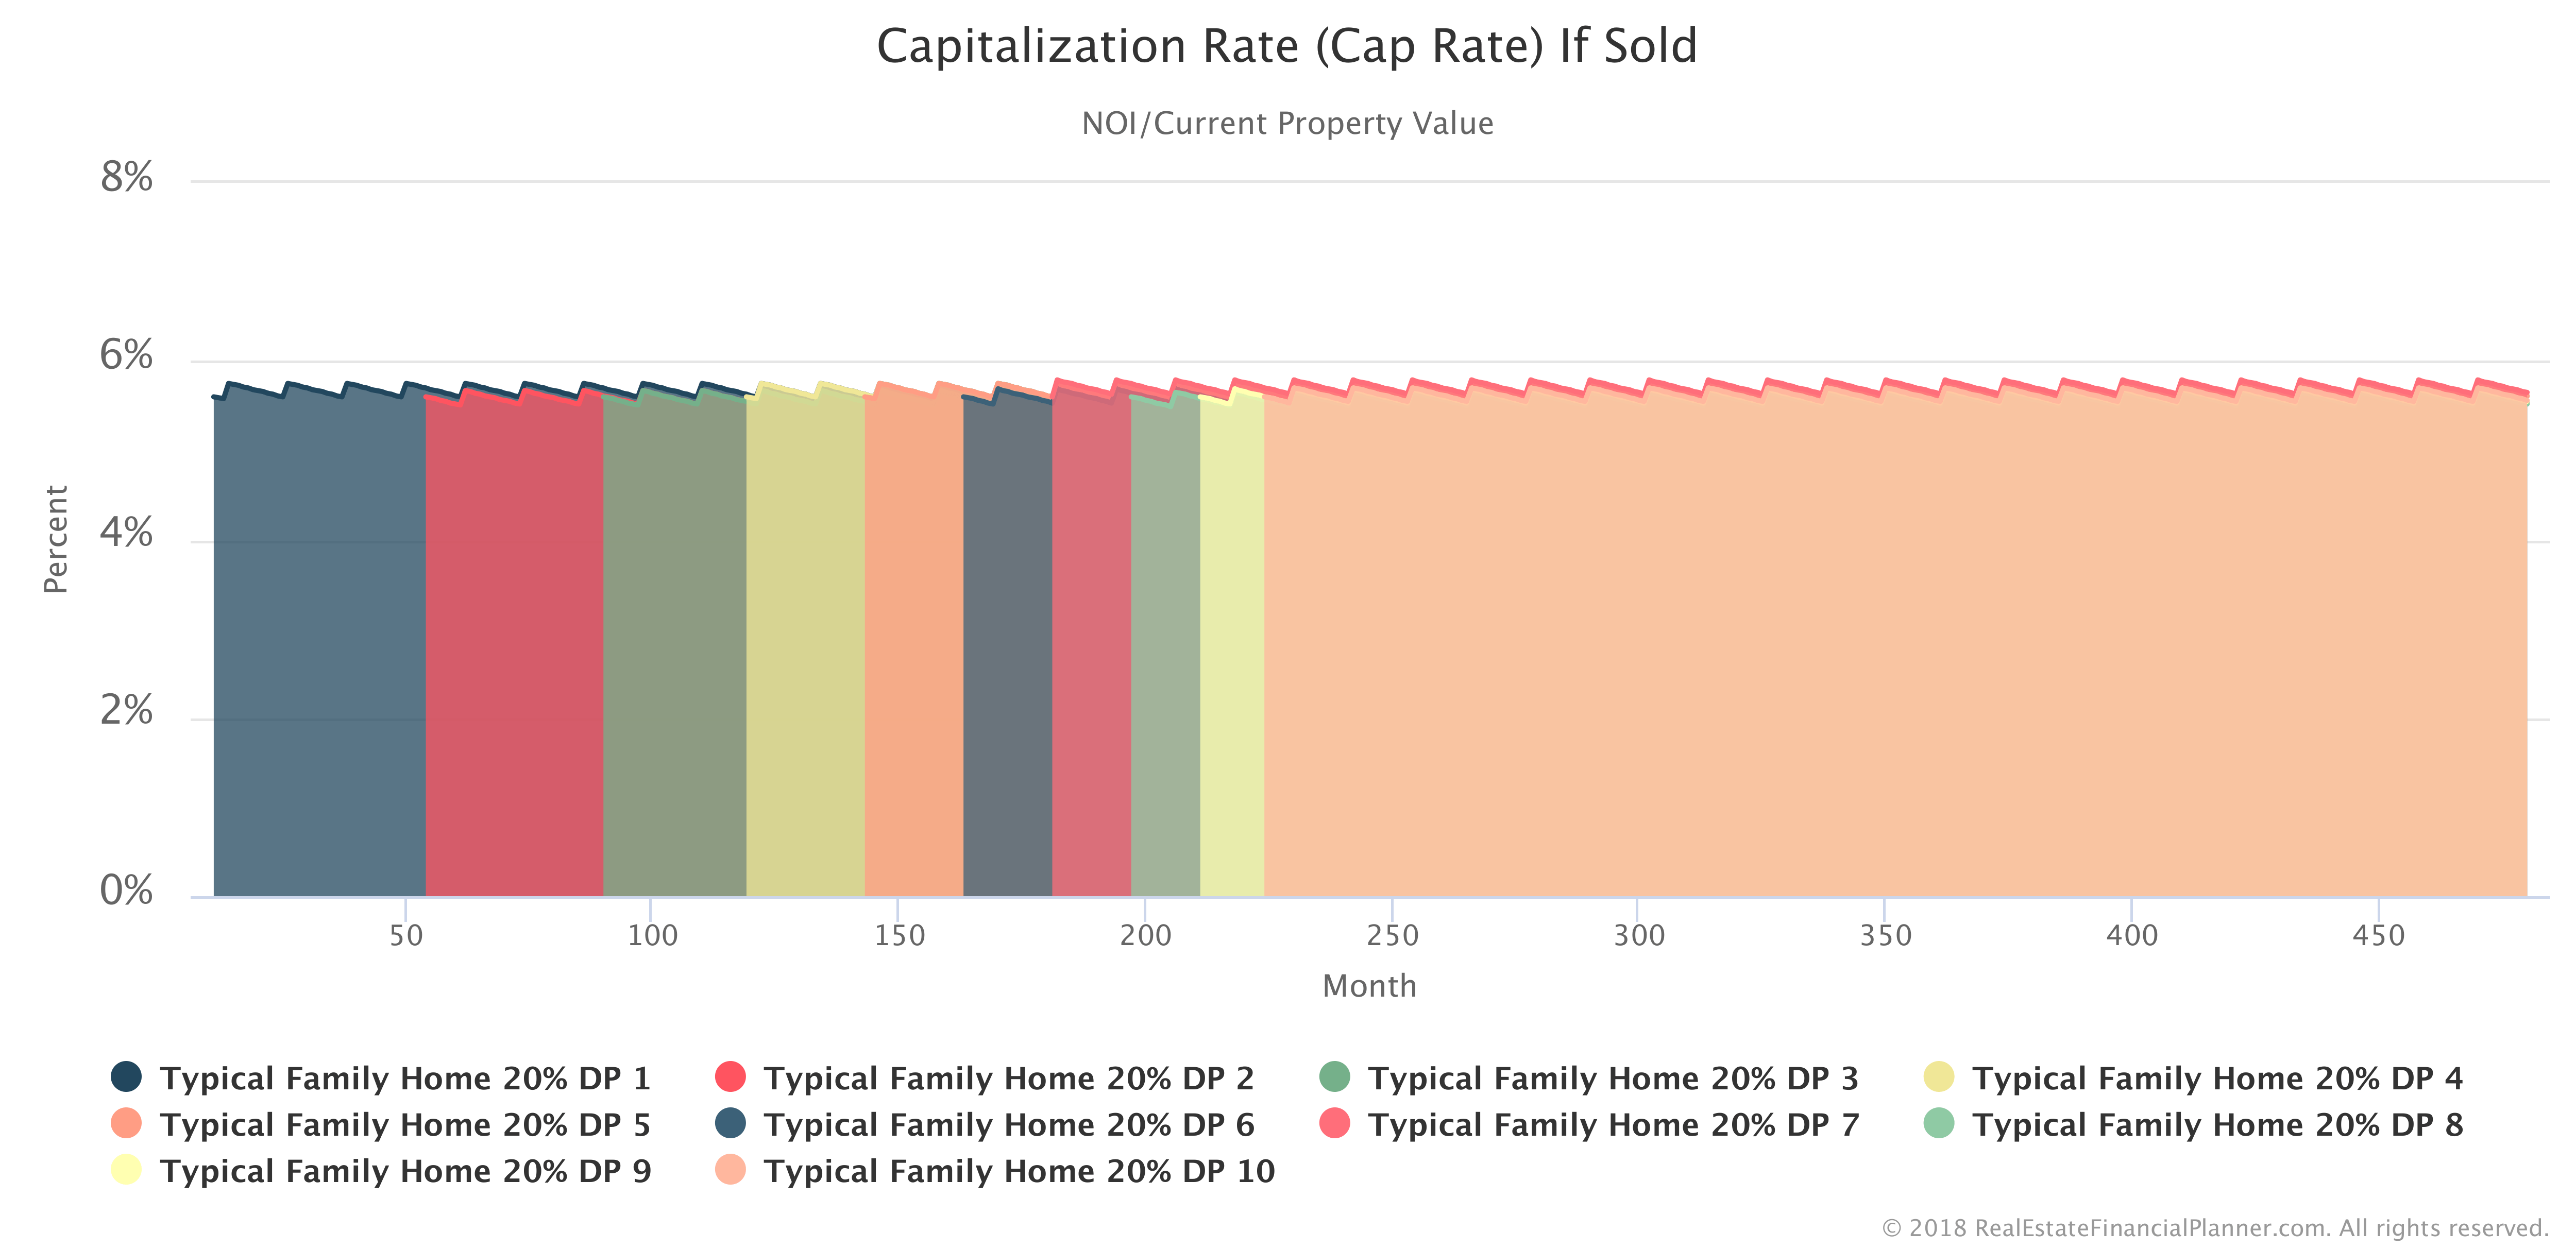 Cap Rate If Sold - 10 Properties